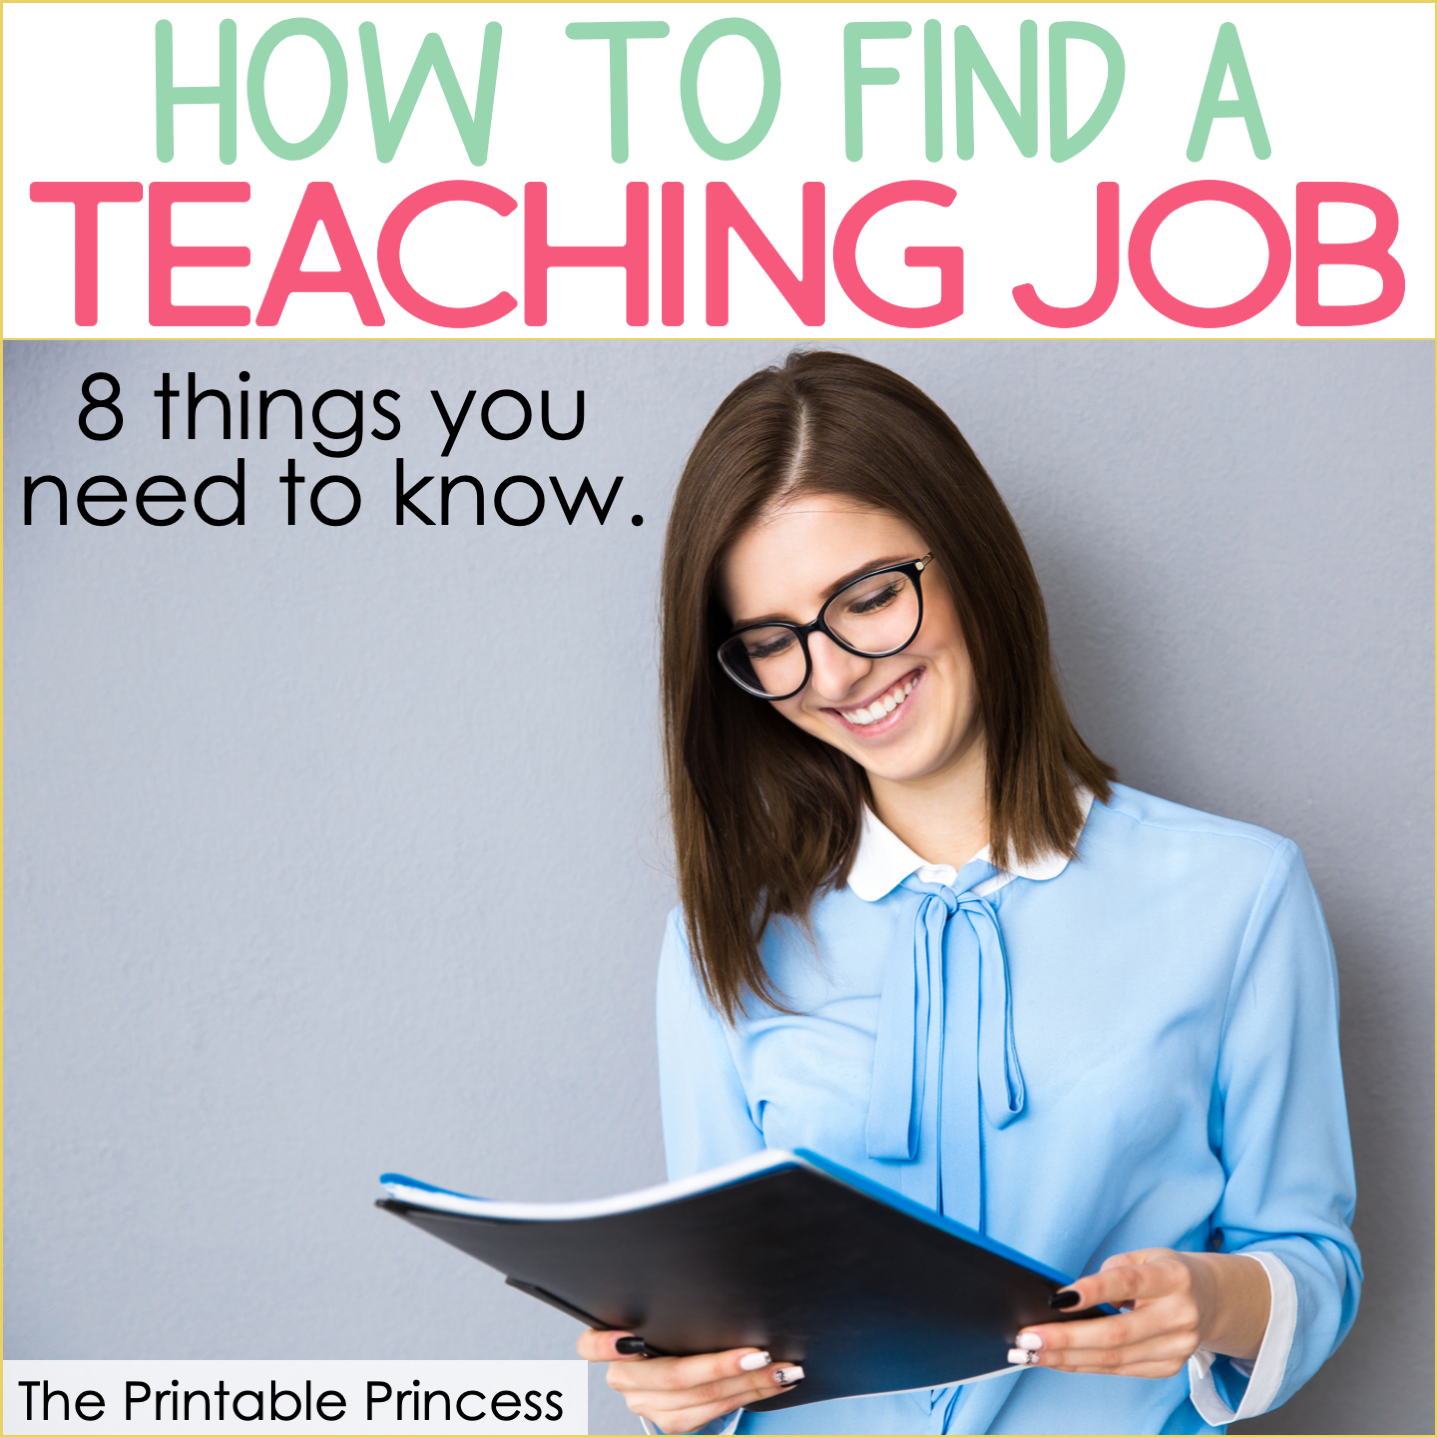 Tips for Finding a Teaching Job